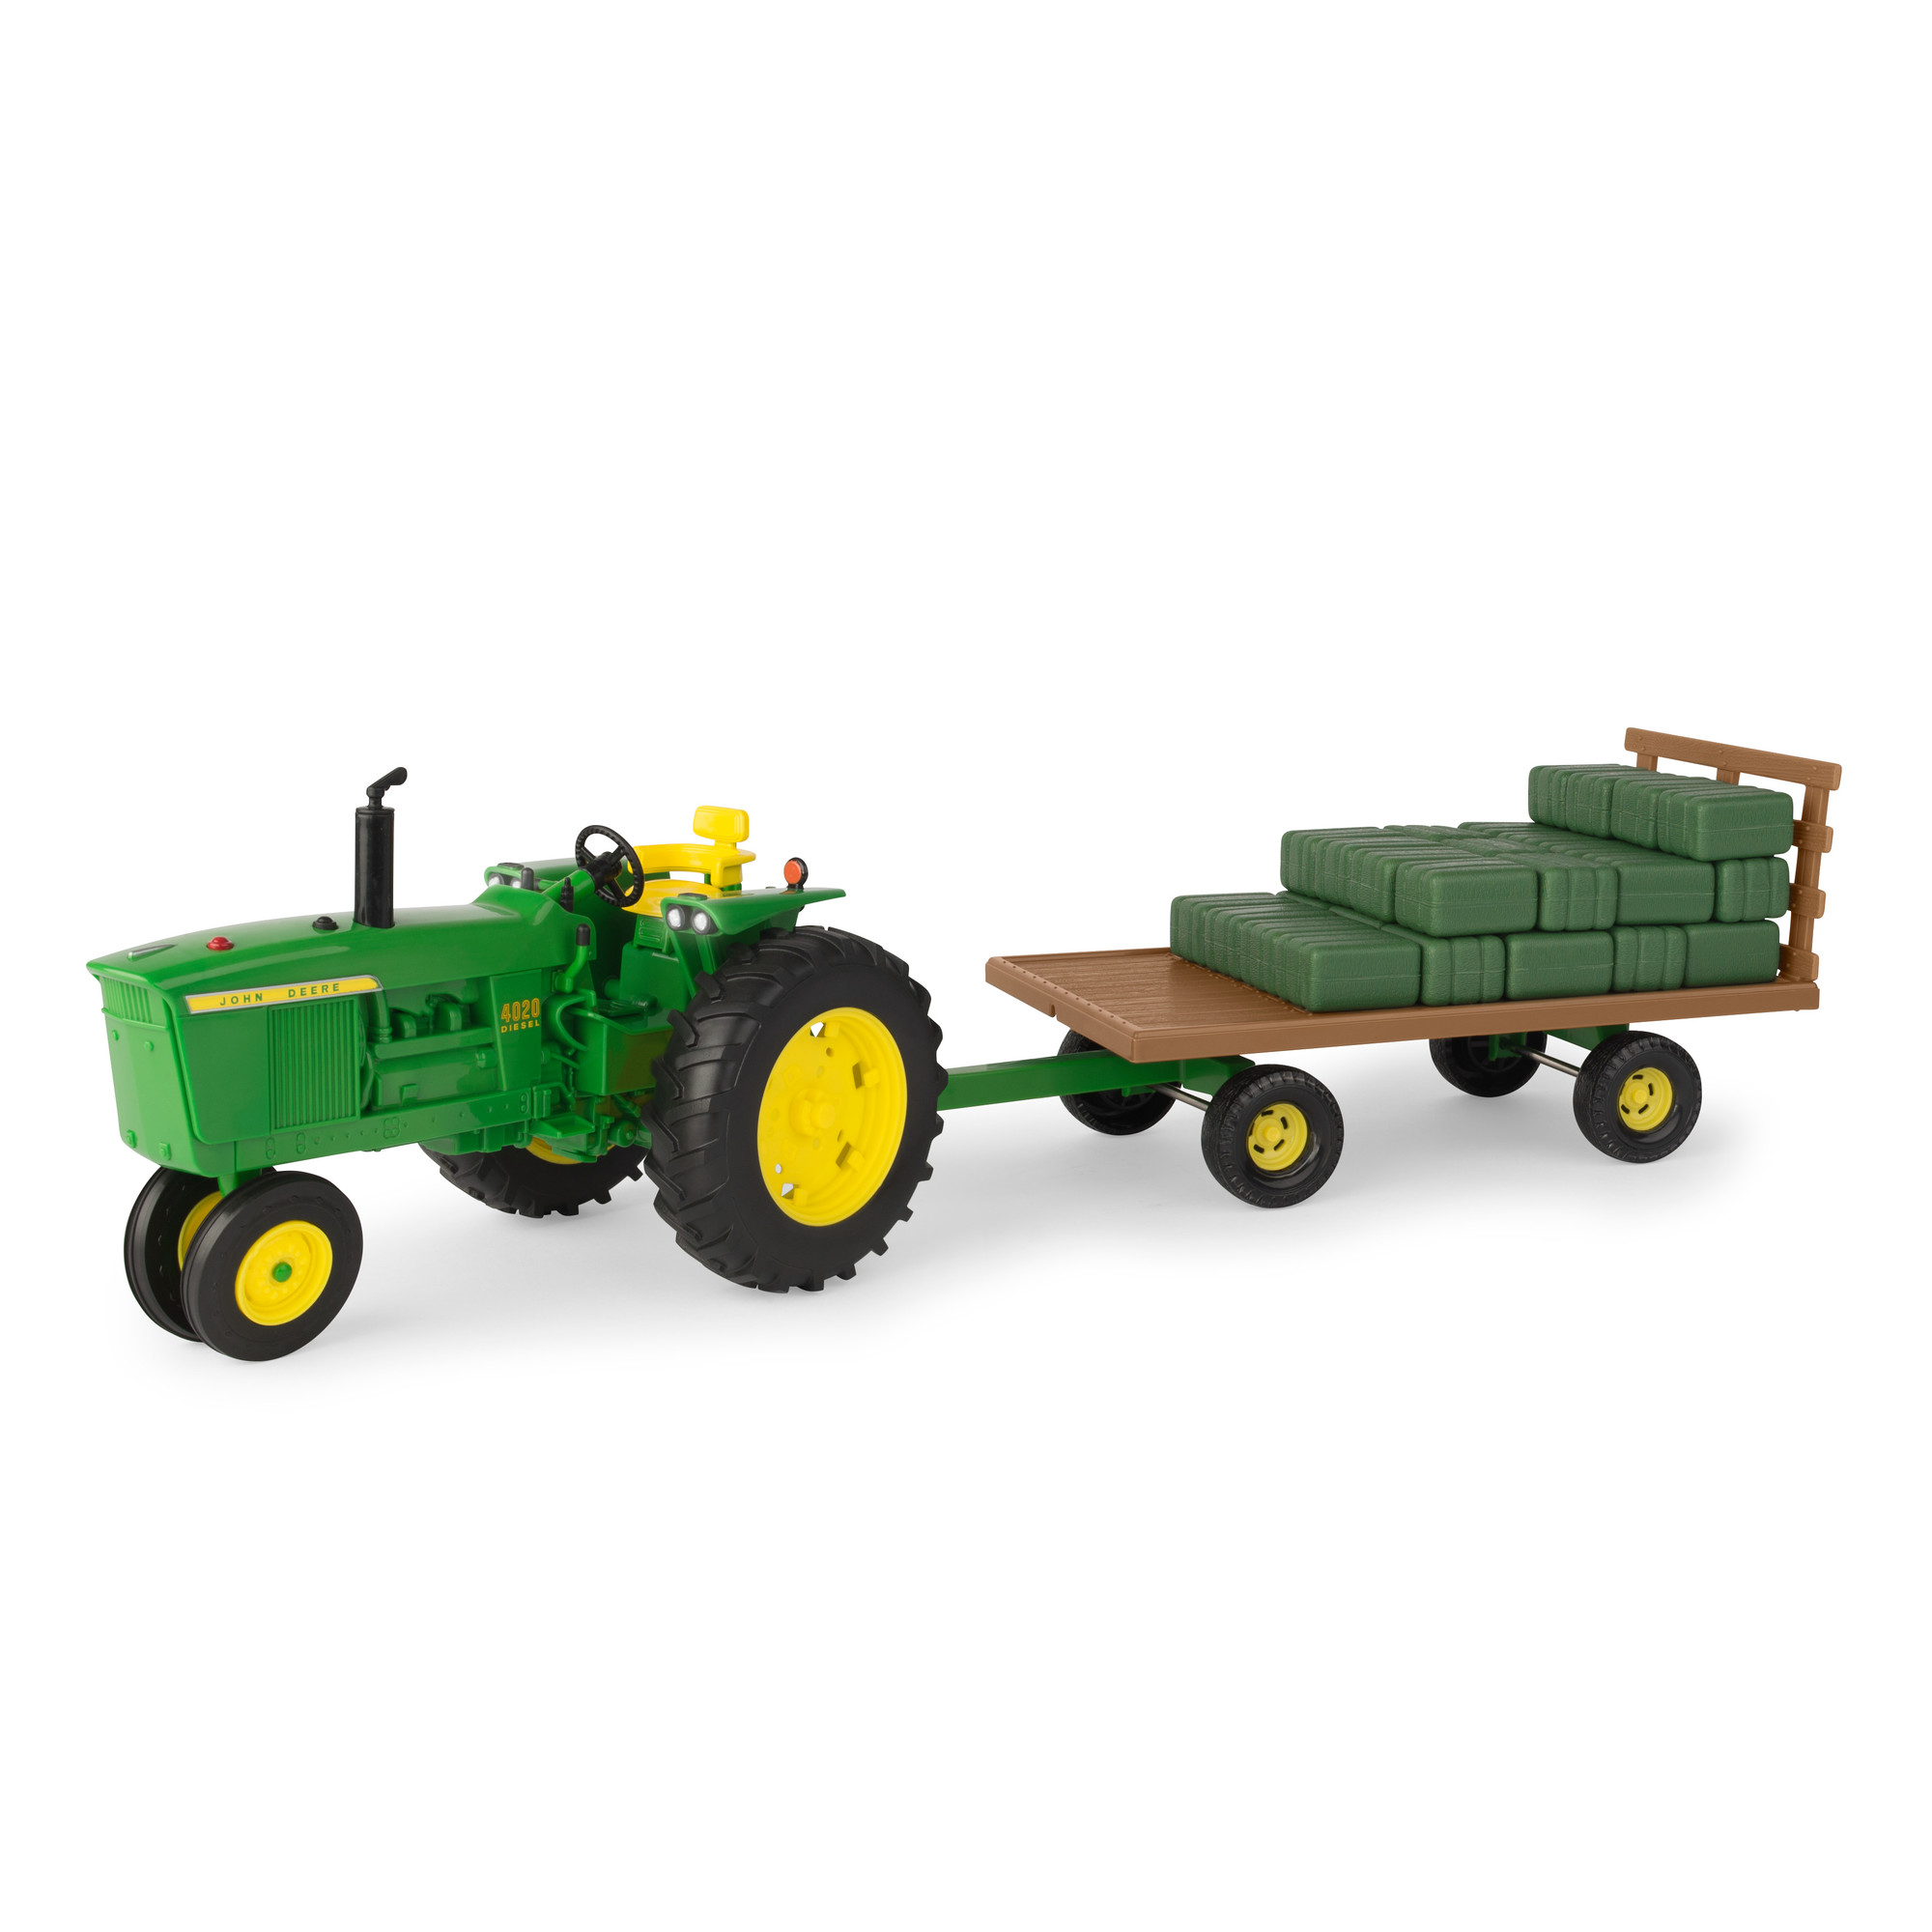 Big Farm 1:16 John Deere 4020 Tractor with Hay Wagon & Bales by TOMY